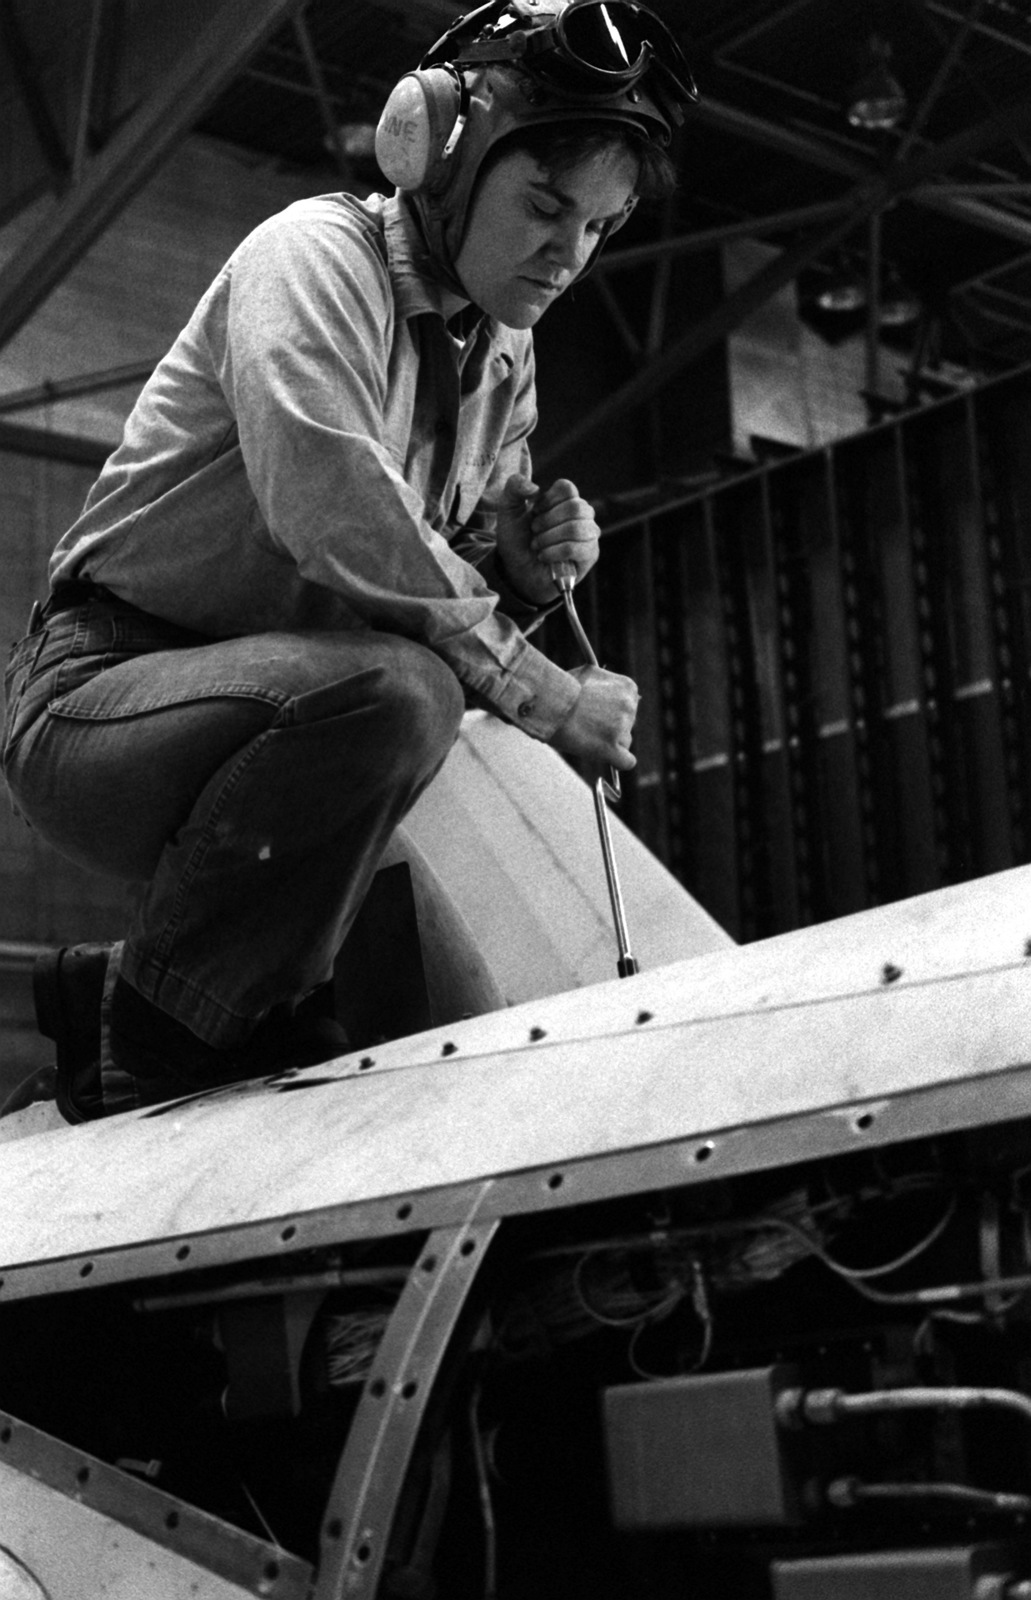 Aviation Structural Mechanic H AIRMAN Lynne Courtney rigs the flap system on the wing of an A-7 Corsair II aircraft